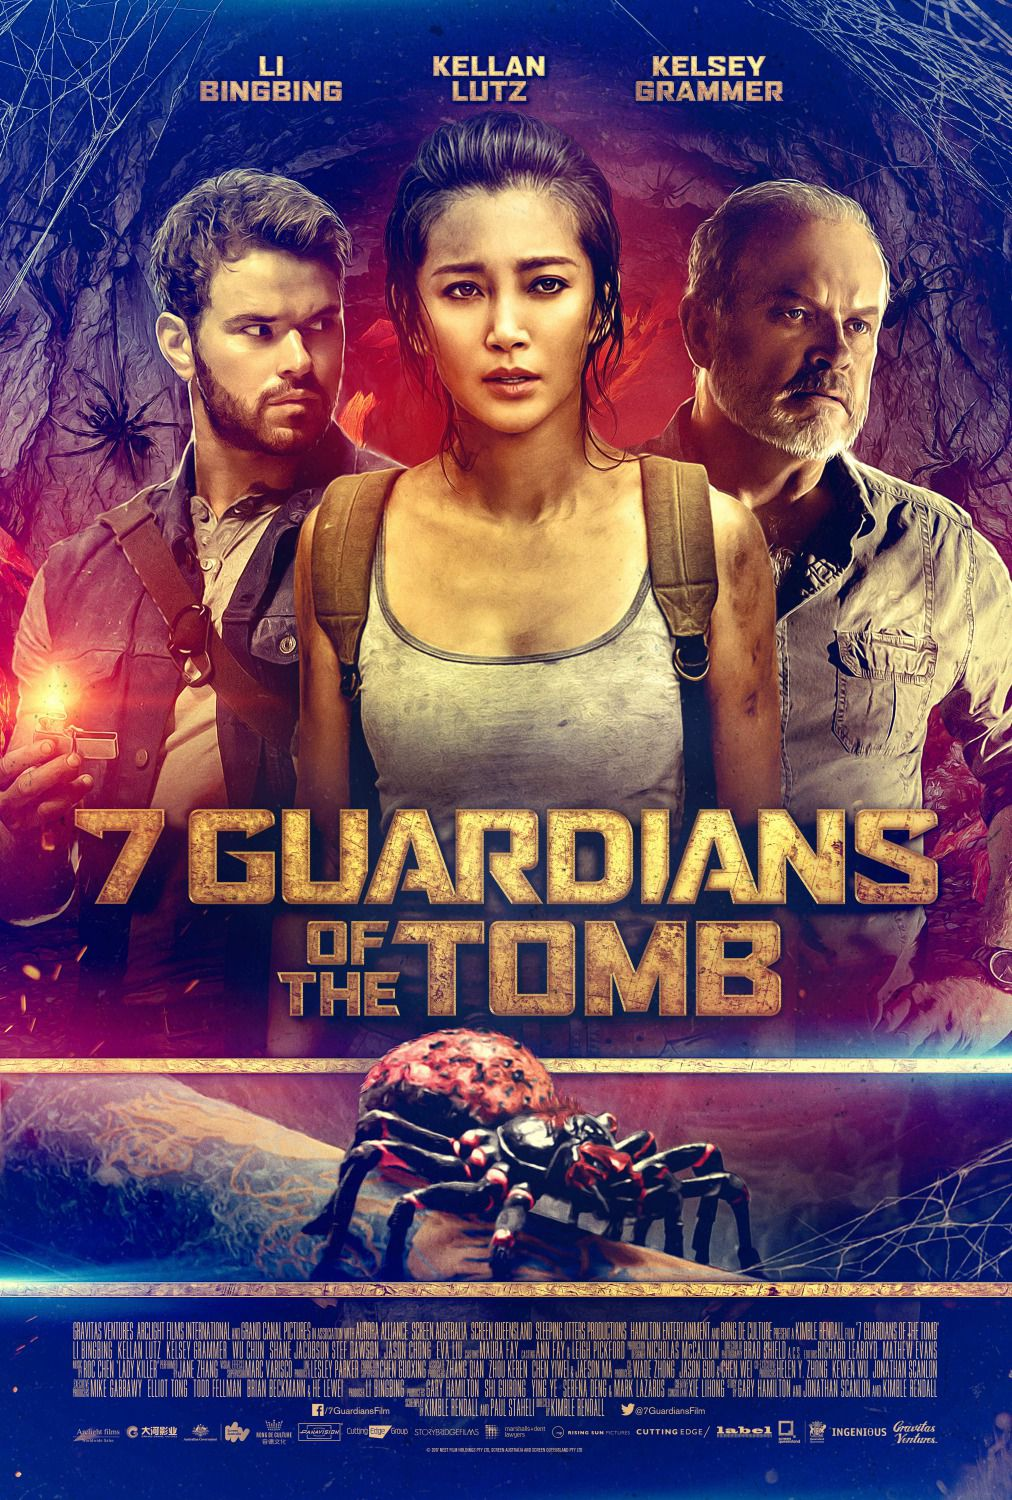 7 Guardians of the Tomb - Sette Guardiani by Kimble Rendall - Kelsey Grammer, Kellan Lutz, Bingbing Li  - film poster 2018